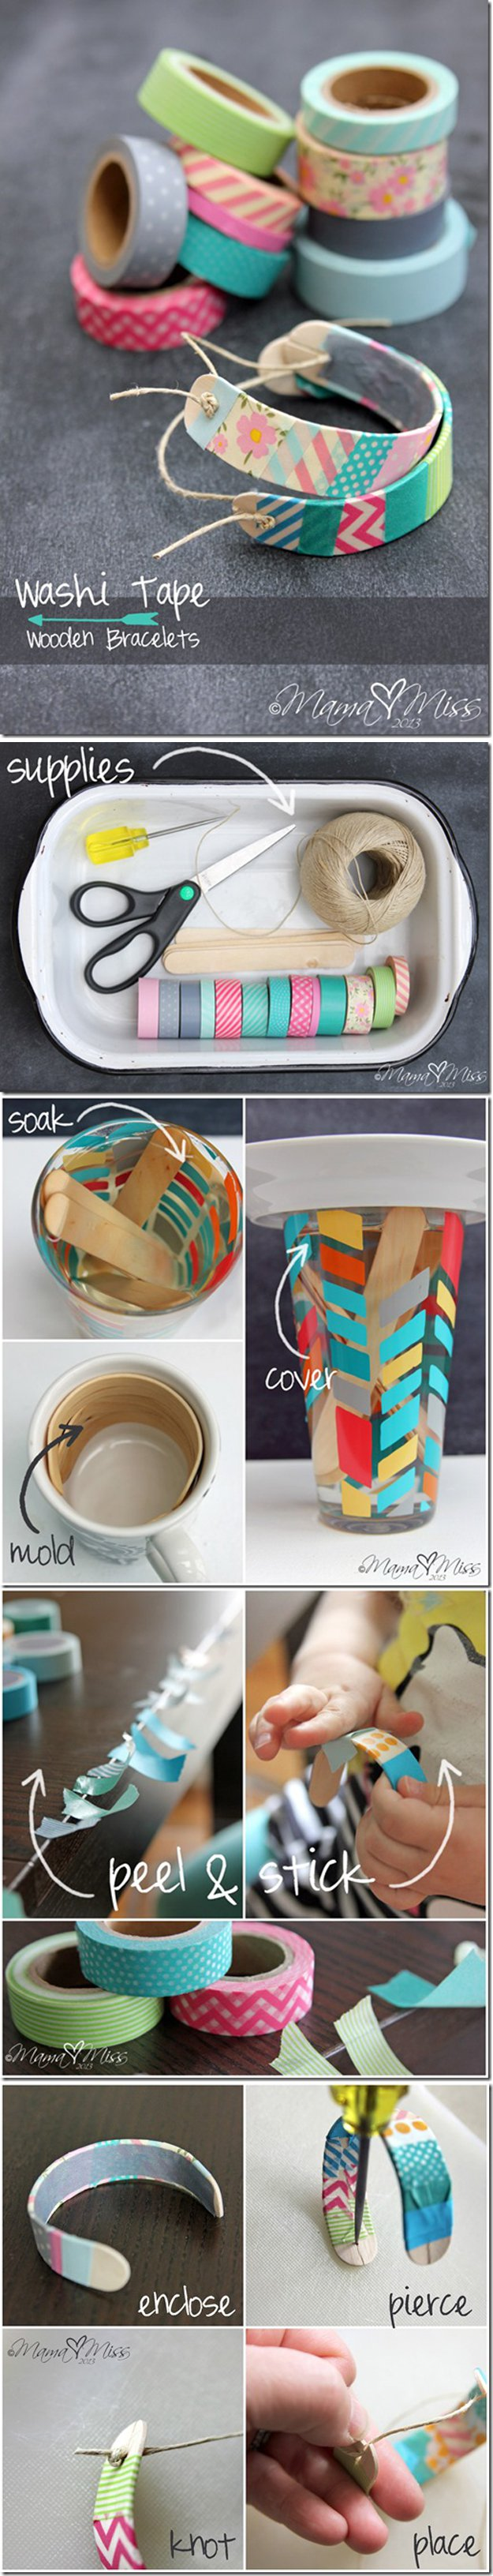 Washi Tape Crafts - DIY Washi TApe Bracelets - Wall Art, Frames, Cards, Pencils, Room Decor and DIY Gifts, Back To School Supplies - Creative, Fun Craft Ideas for Teens, Tweens and Teenagers - Step by Step Tutorials and Instructions #washitape #crafts #cheapcrafts #teencrafts